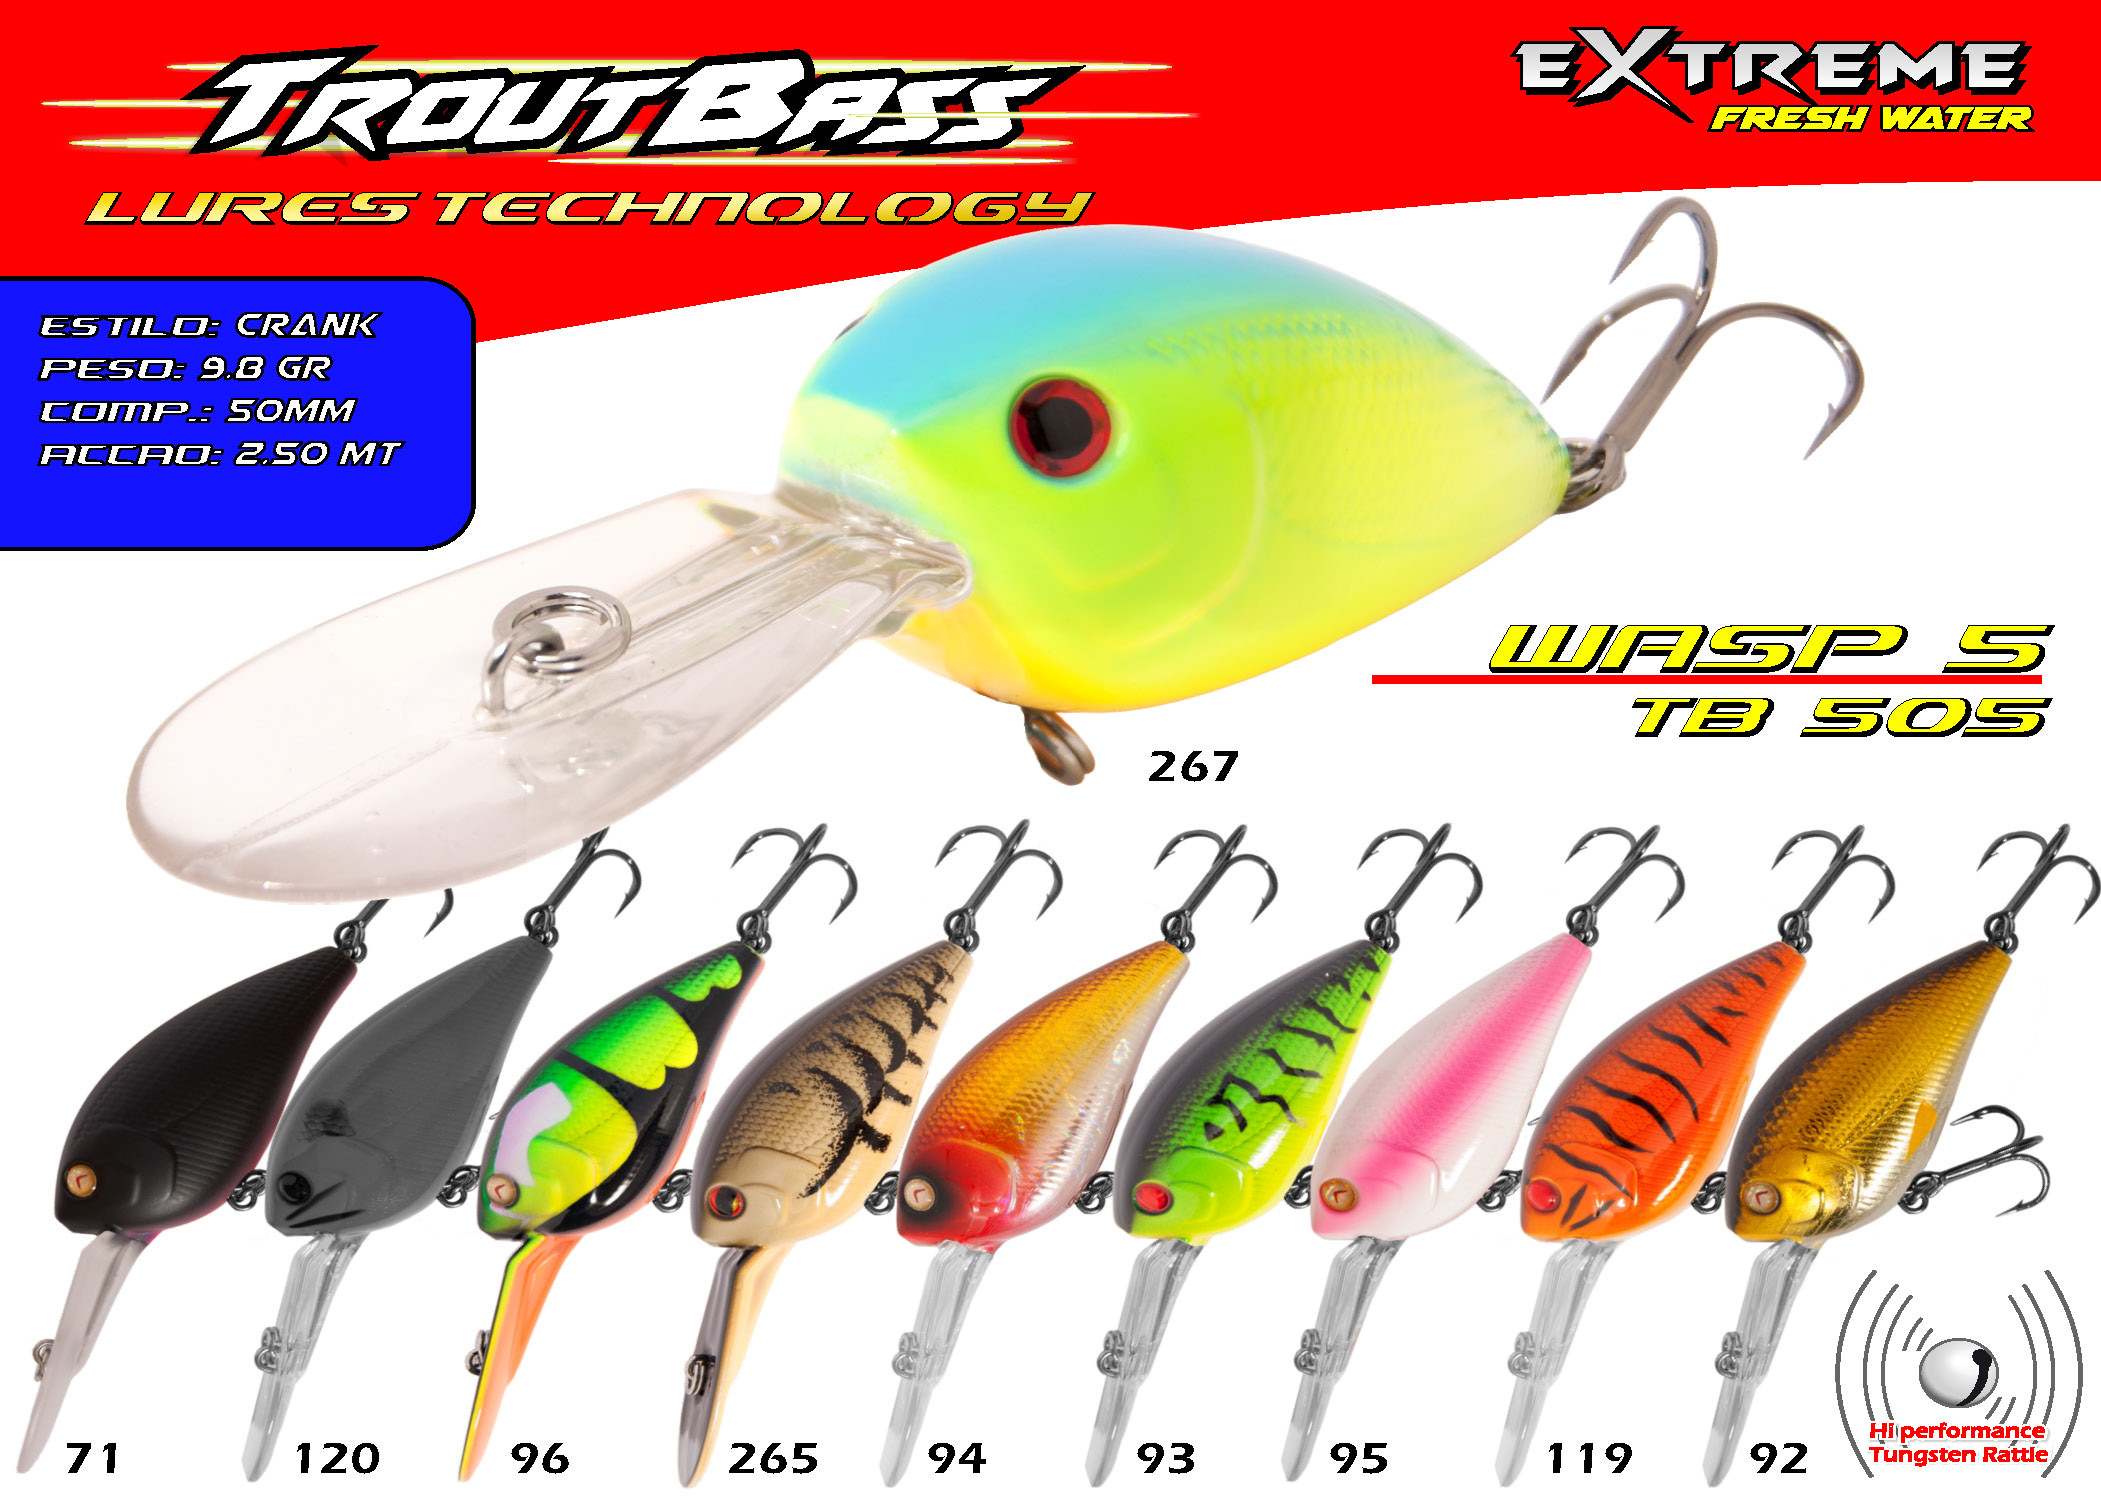 Troutbass Wasp5 TB 505